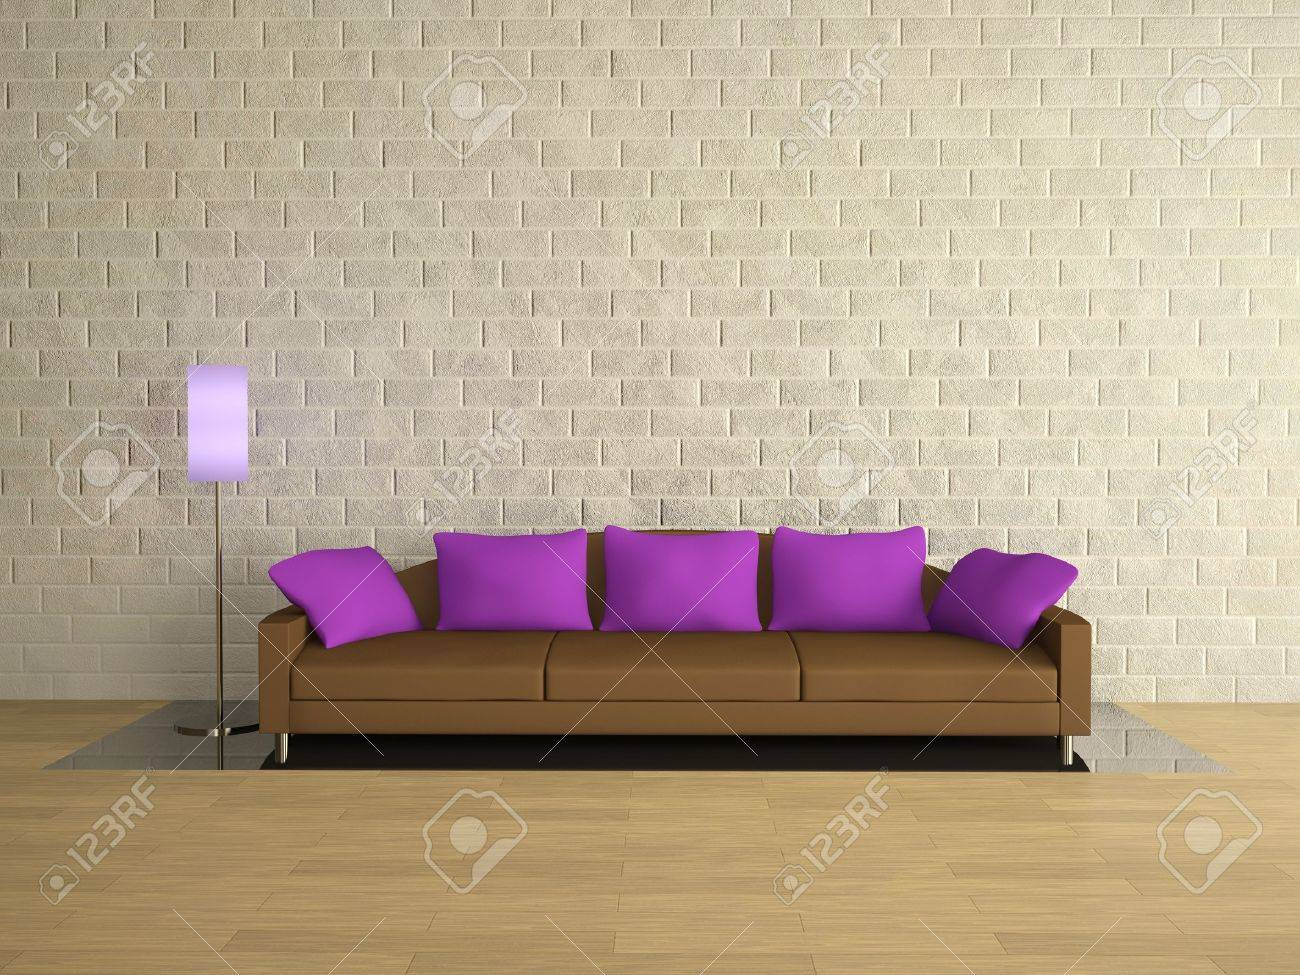 Couch Lila Brown Sofa With Lilac Pillows Near A Brick Wall Stock Photo, Picture And Royalty Free Image. Image 12910988.